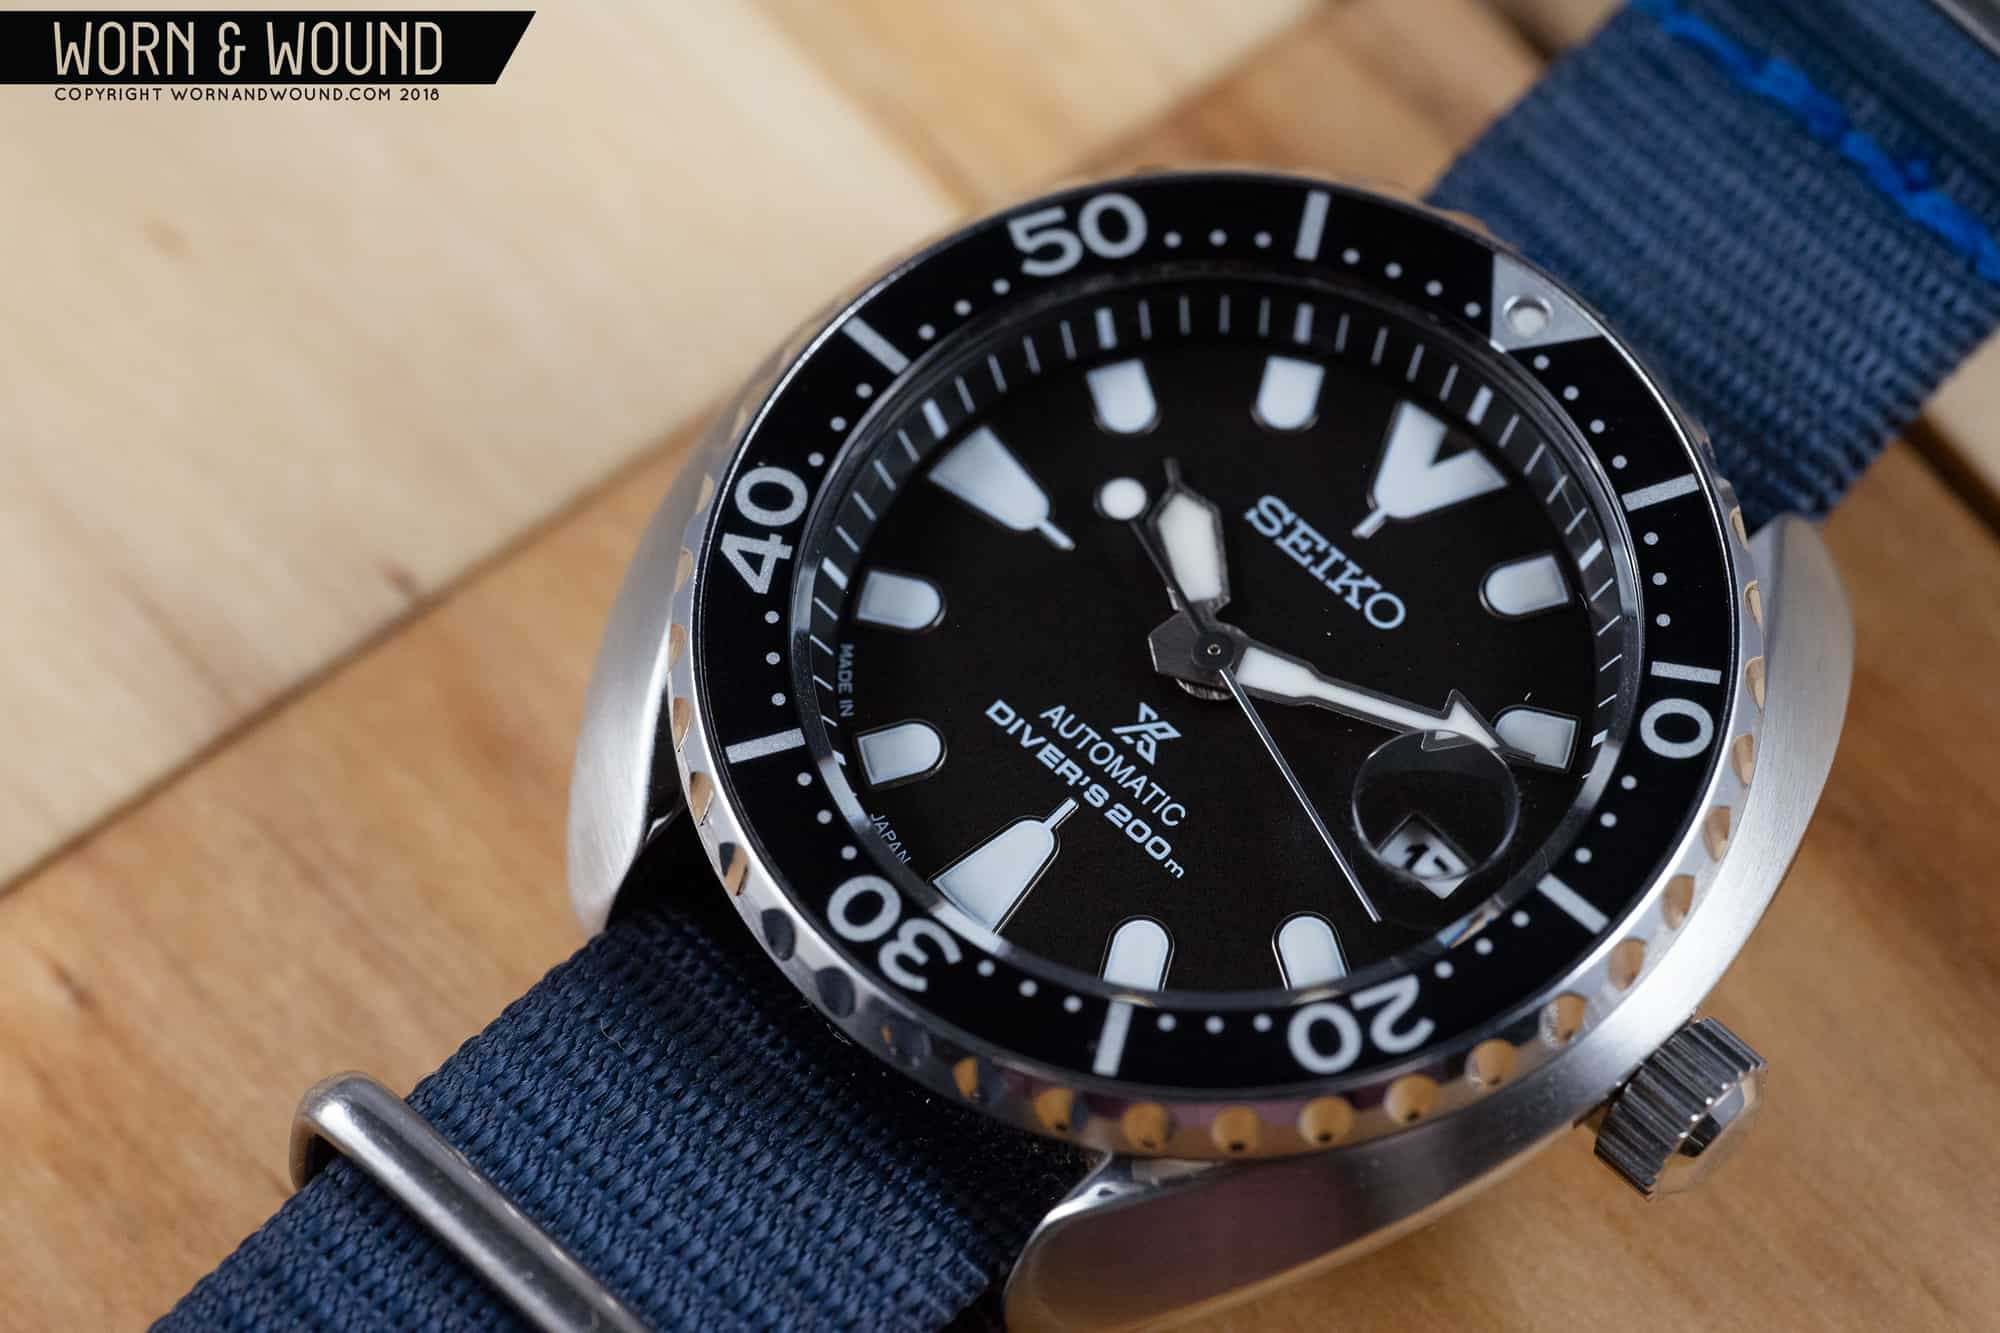 Review: Is the Seiko Mini-Turtle the New SKX007? - Worn & Wound